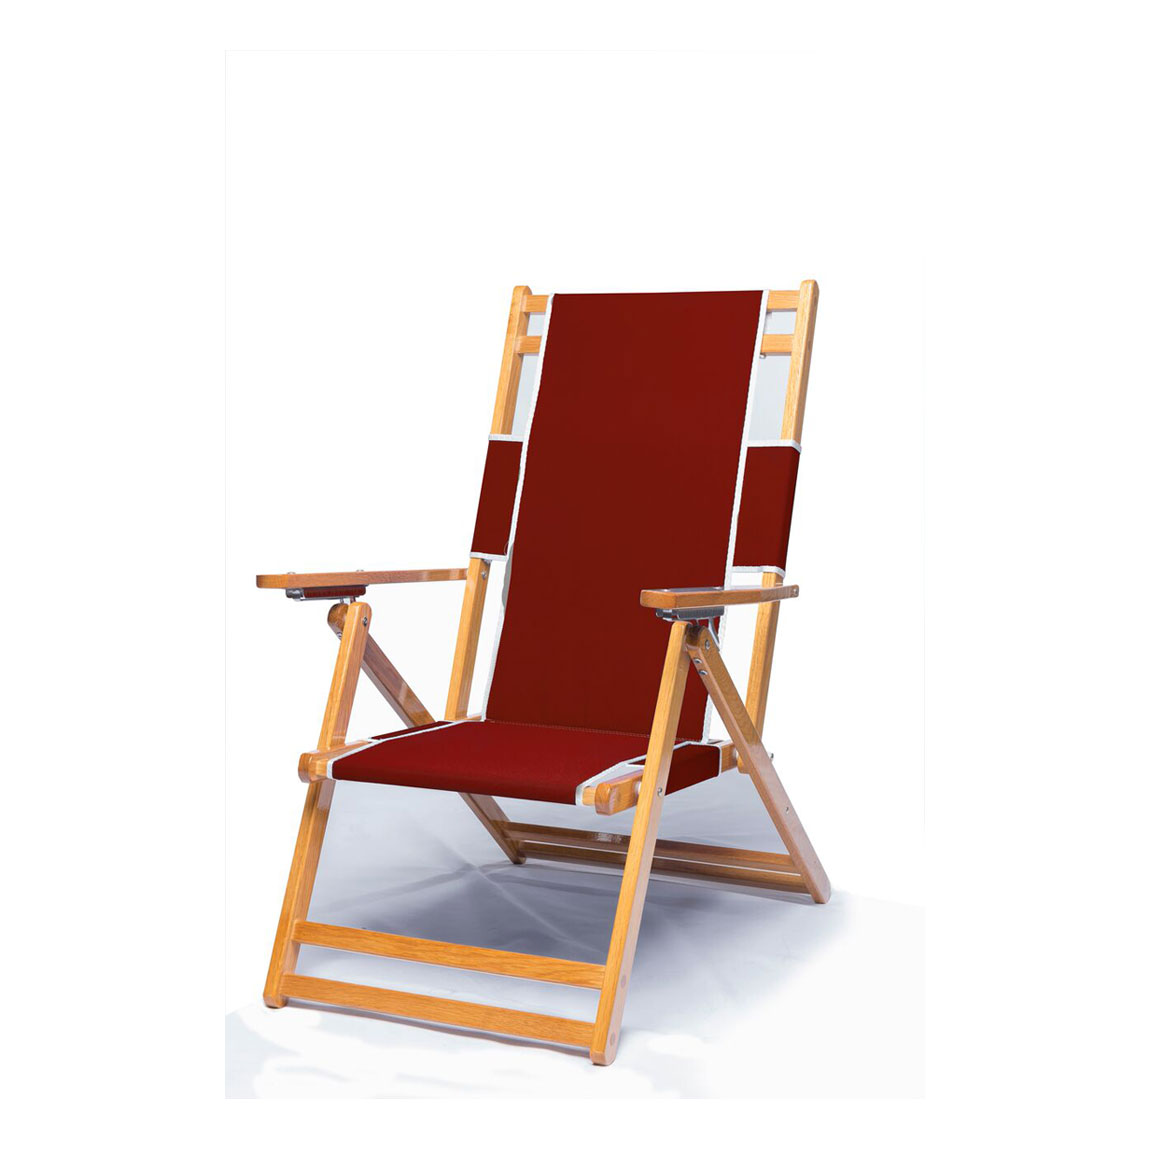 Beach Lounger Chair Heavy Duty Commercial Grade Oak Wood Beach Chair Chaise